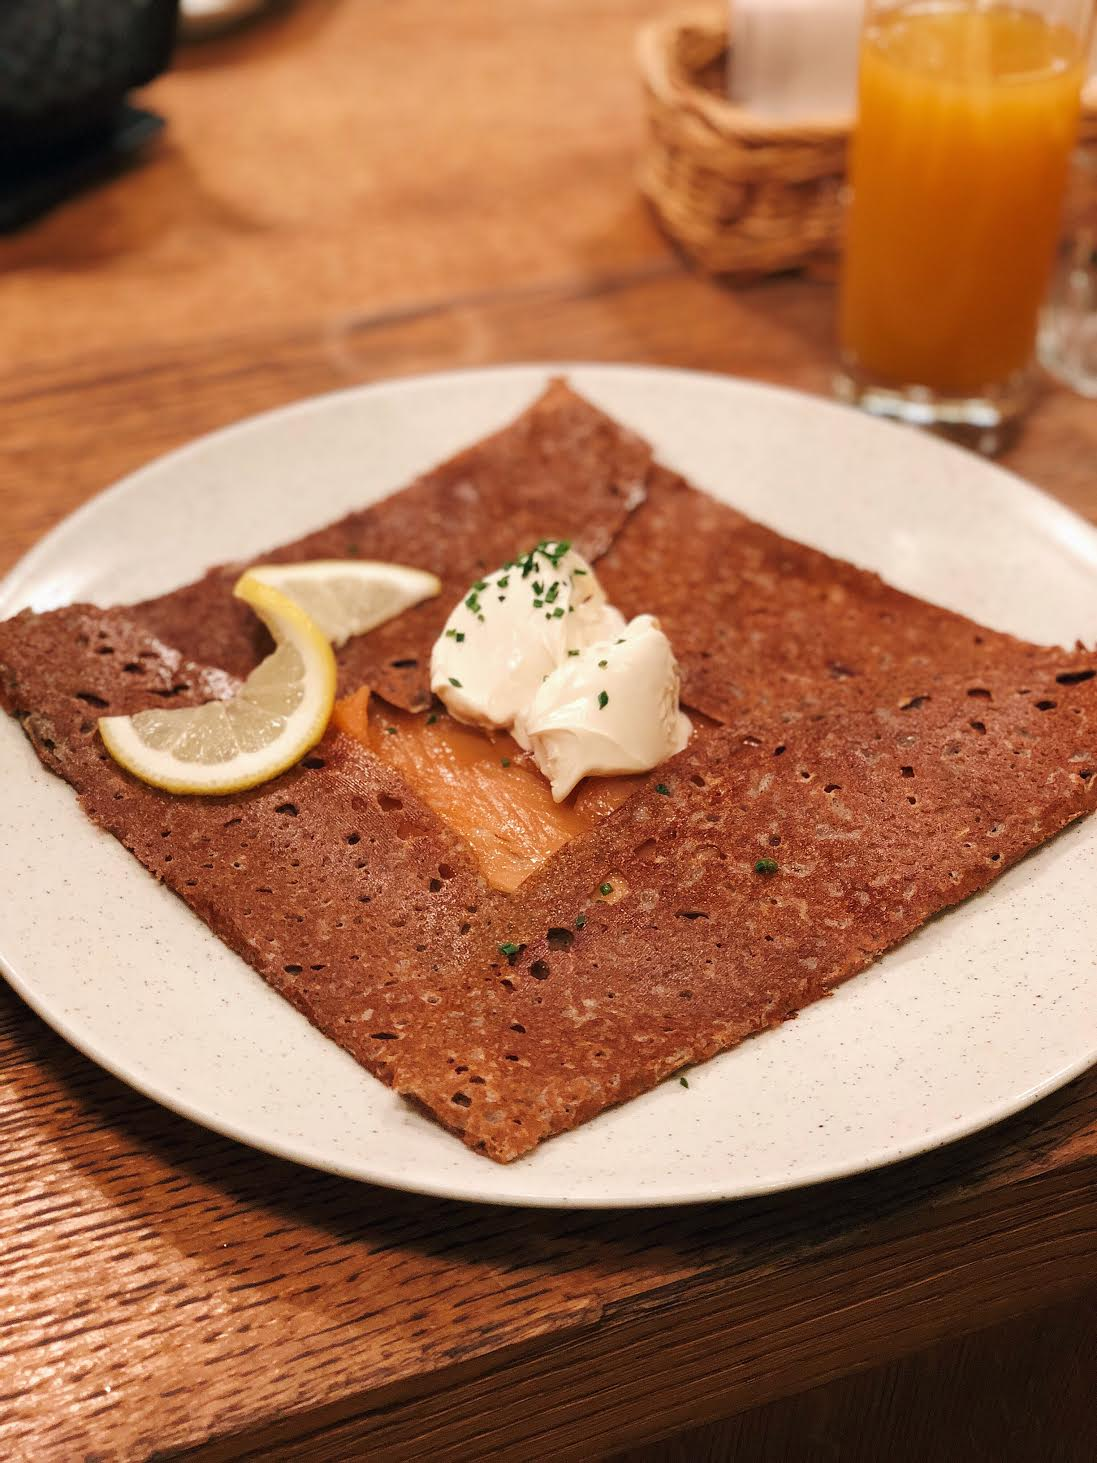 Muslim-travel-guide-Paris-authentic-crepes.jpg